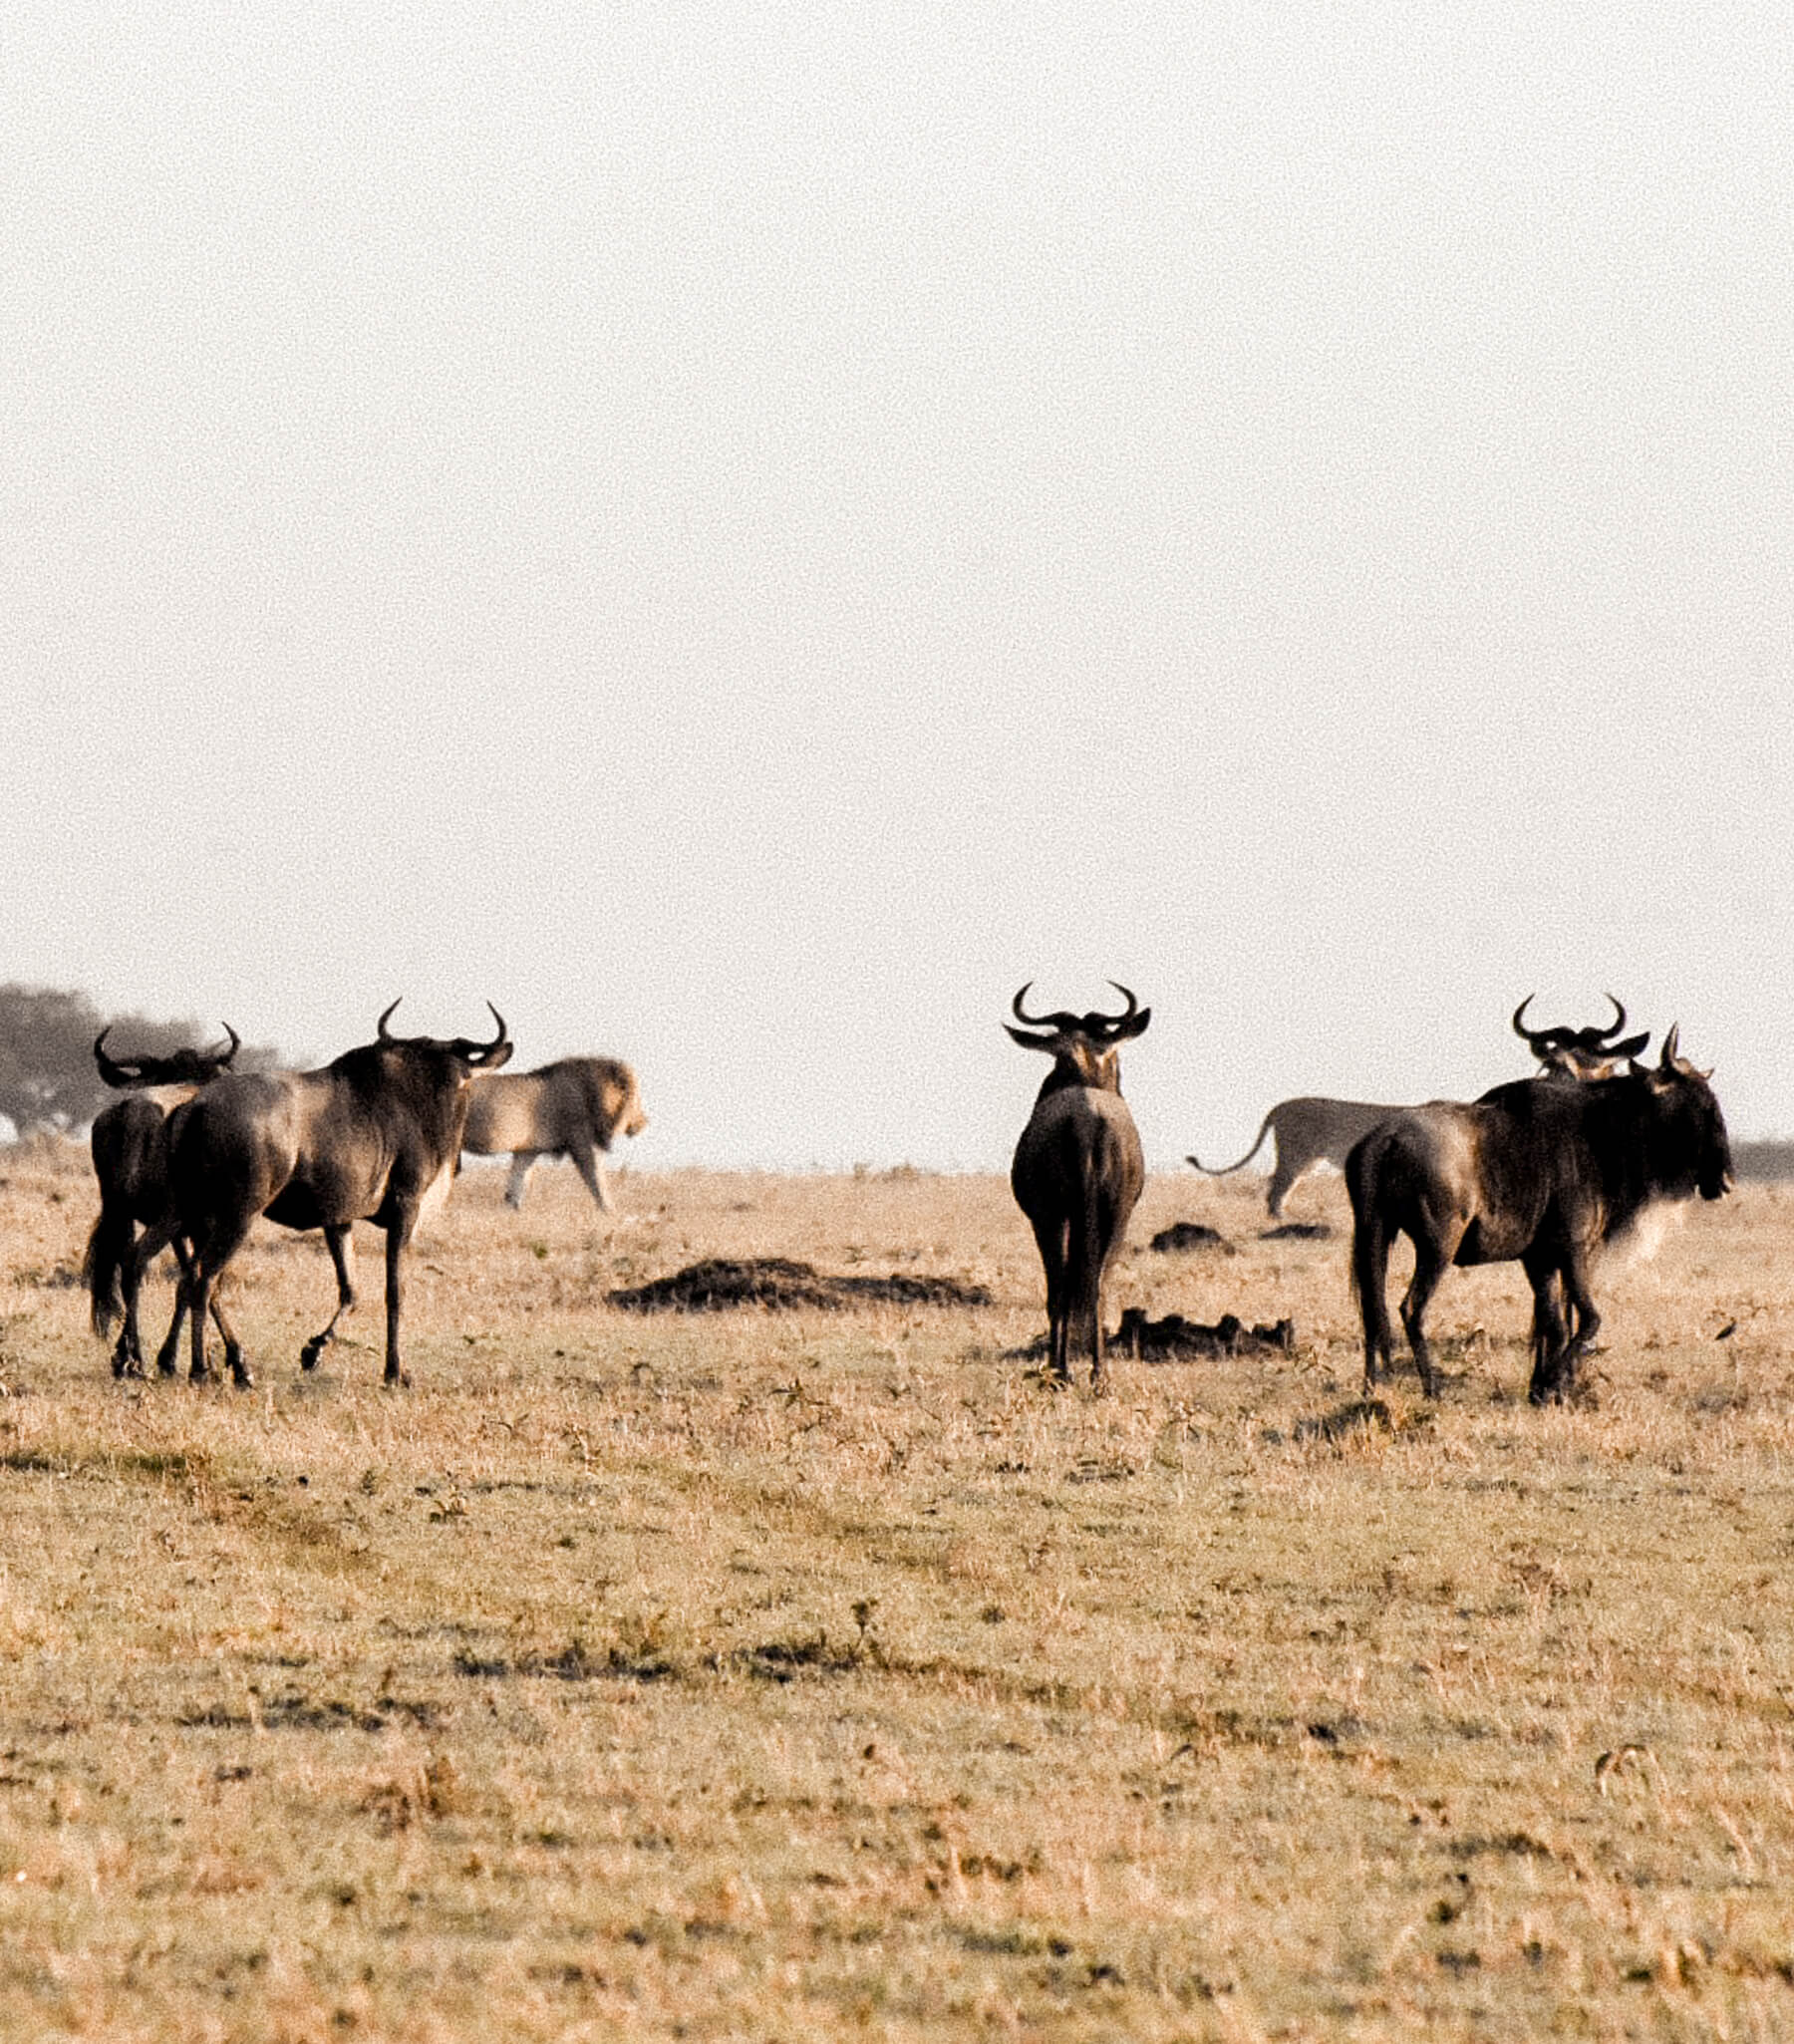 Wildebeest standing in a line looking at two lions walking in front of them